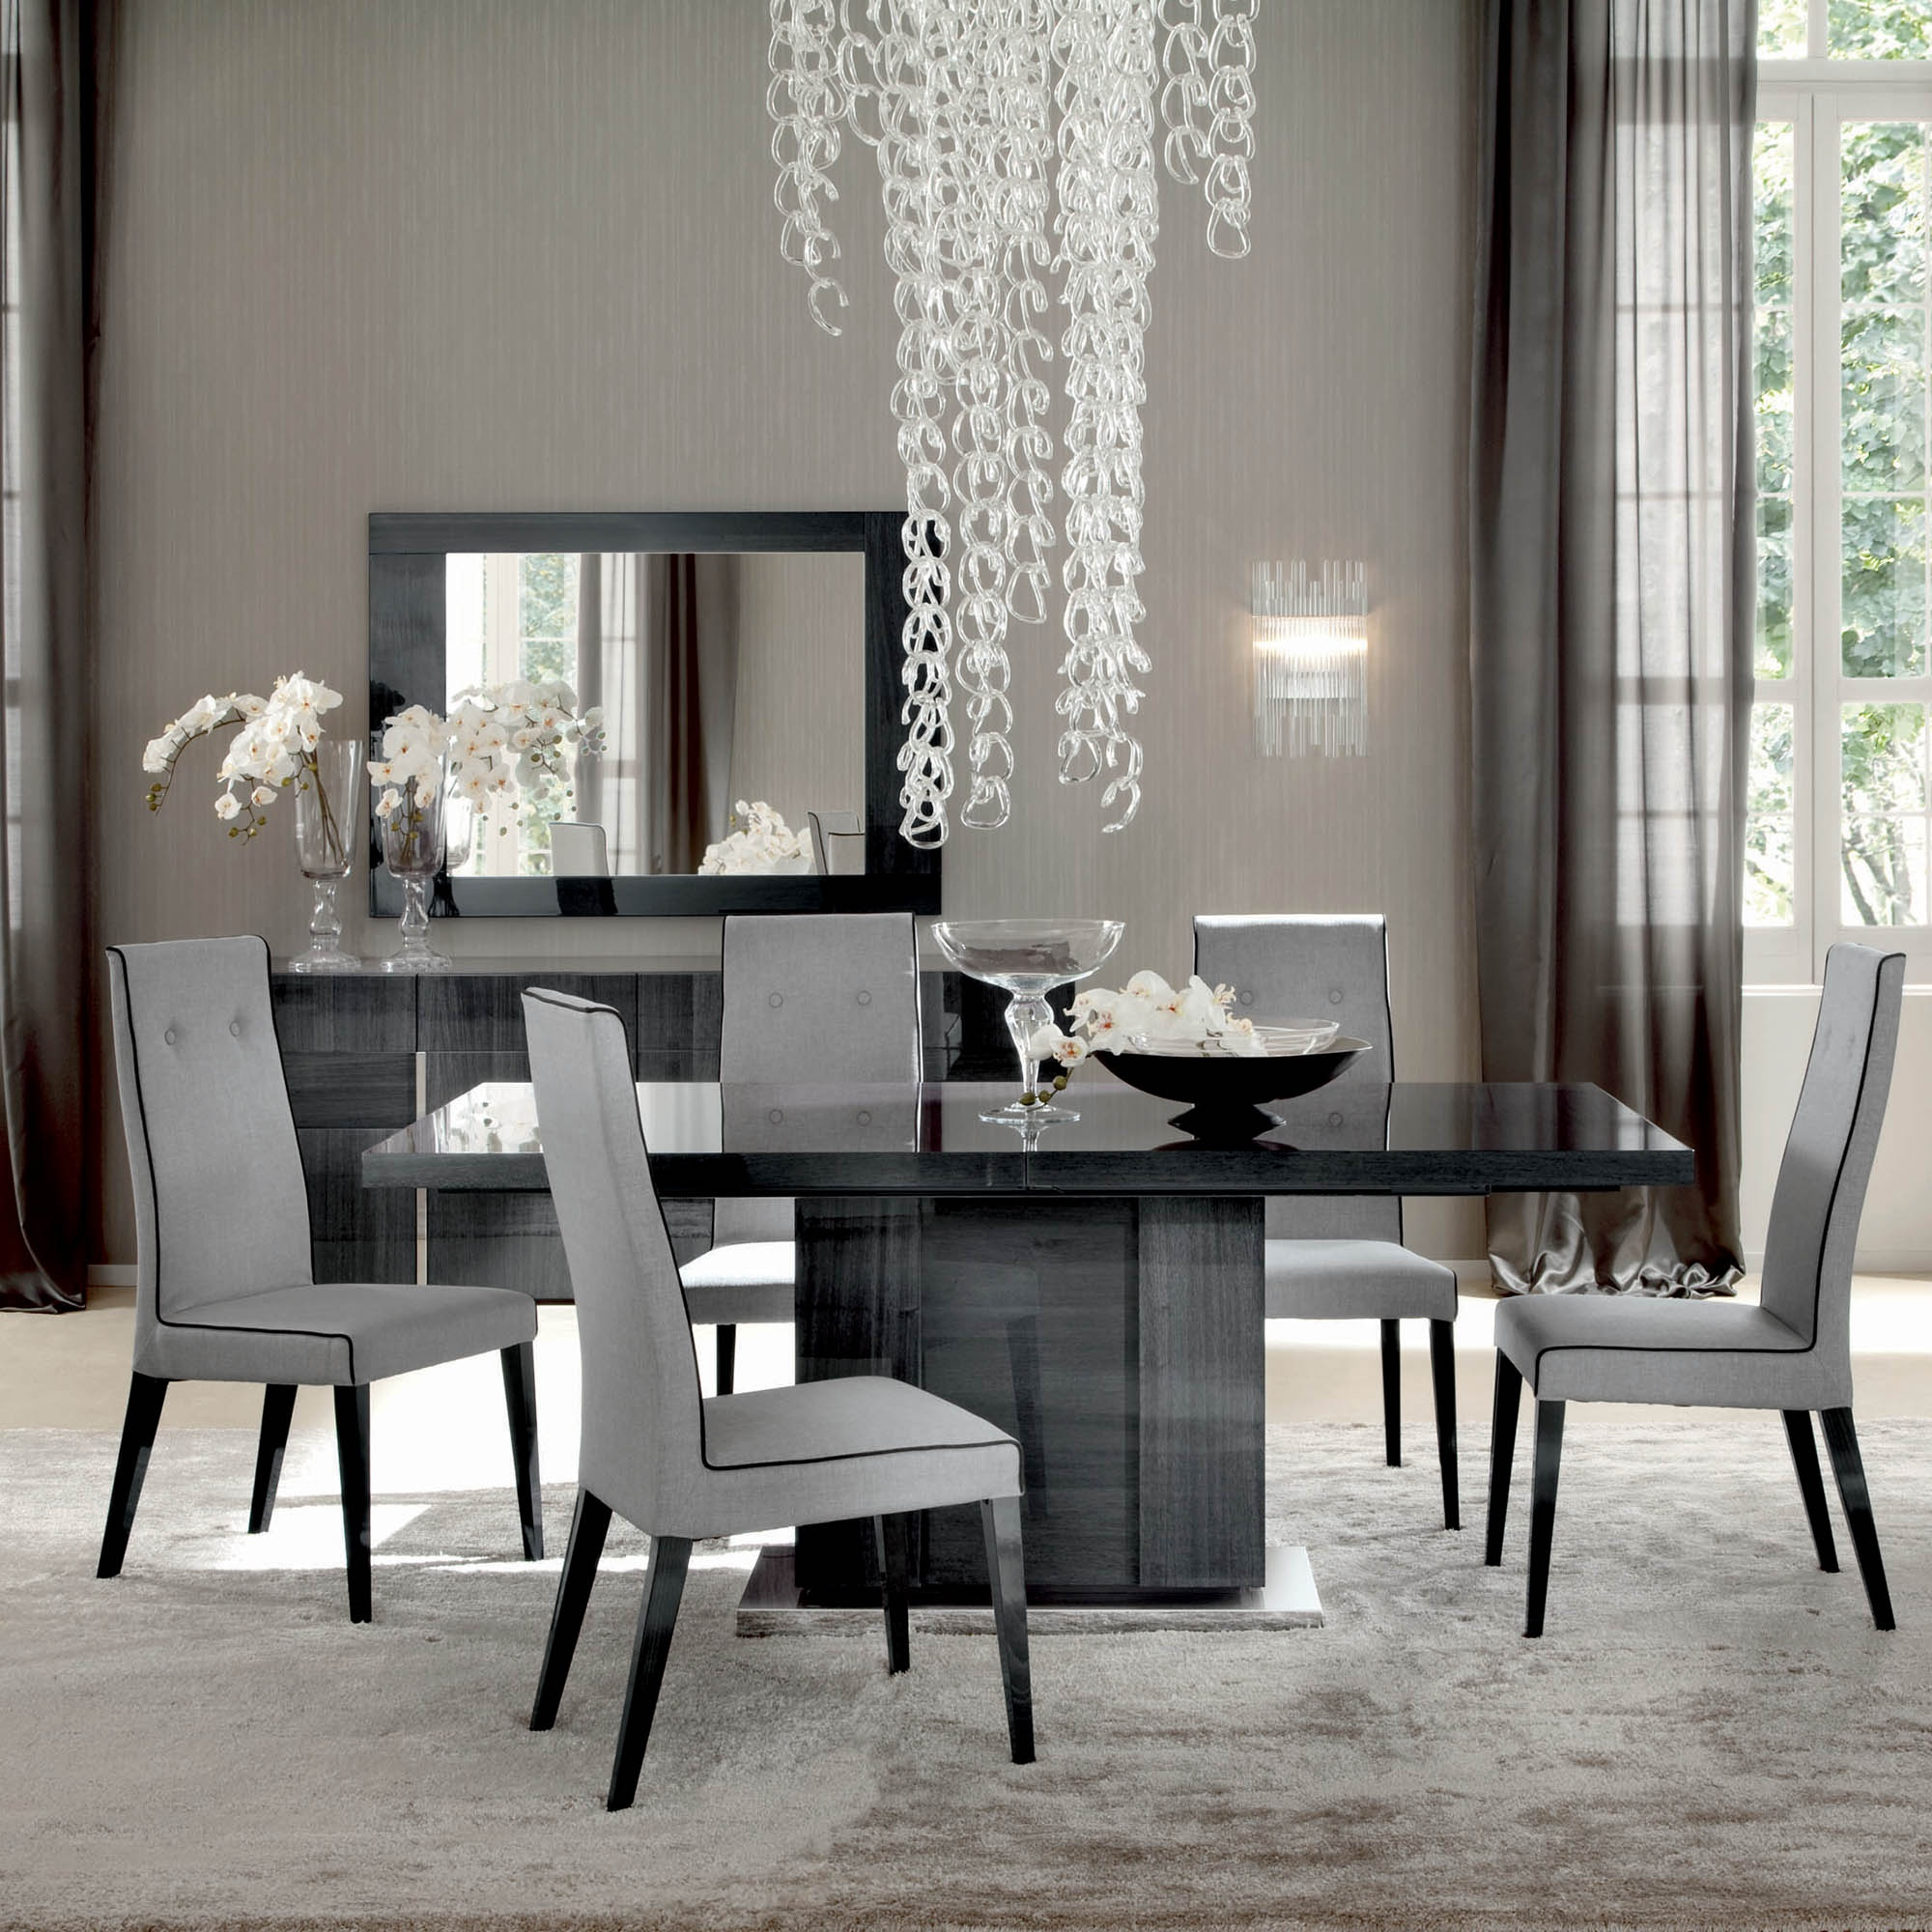 Alf Monte Carlo Dining Table And 6 Chairs Alf